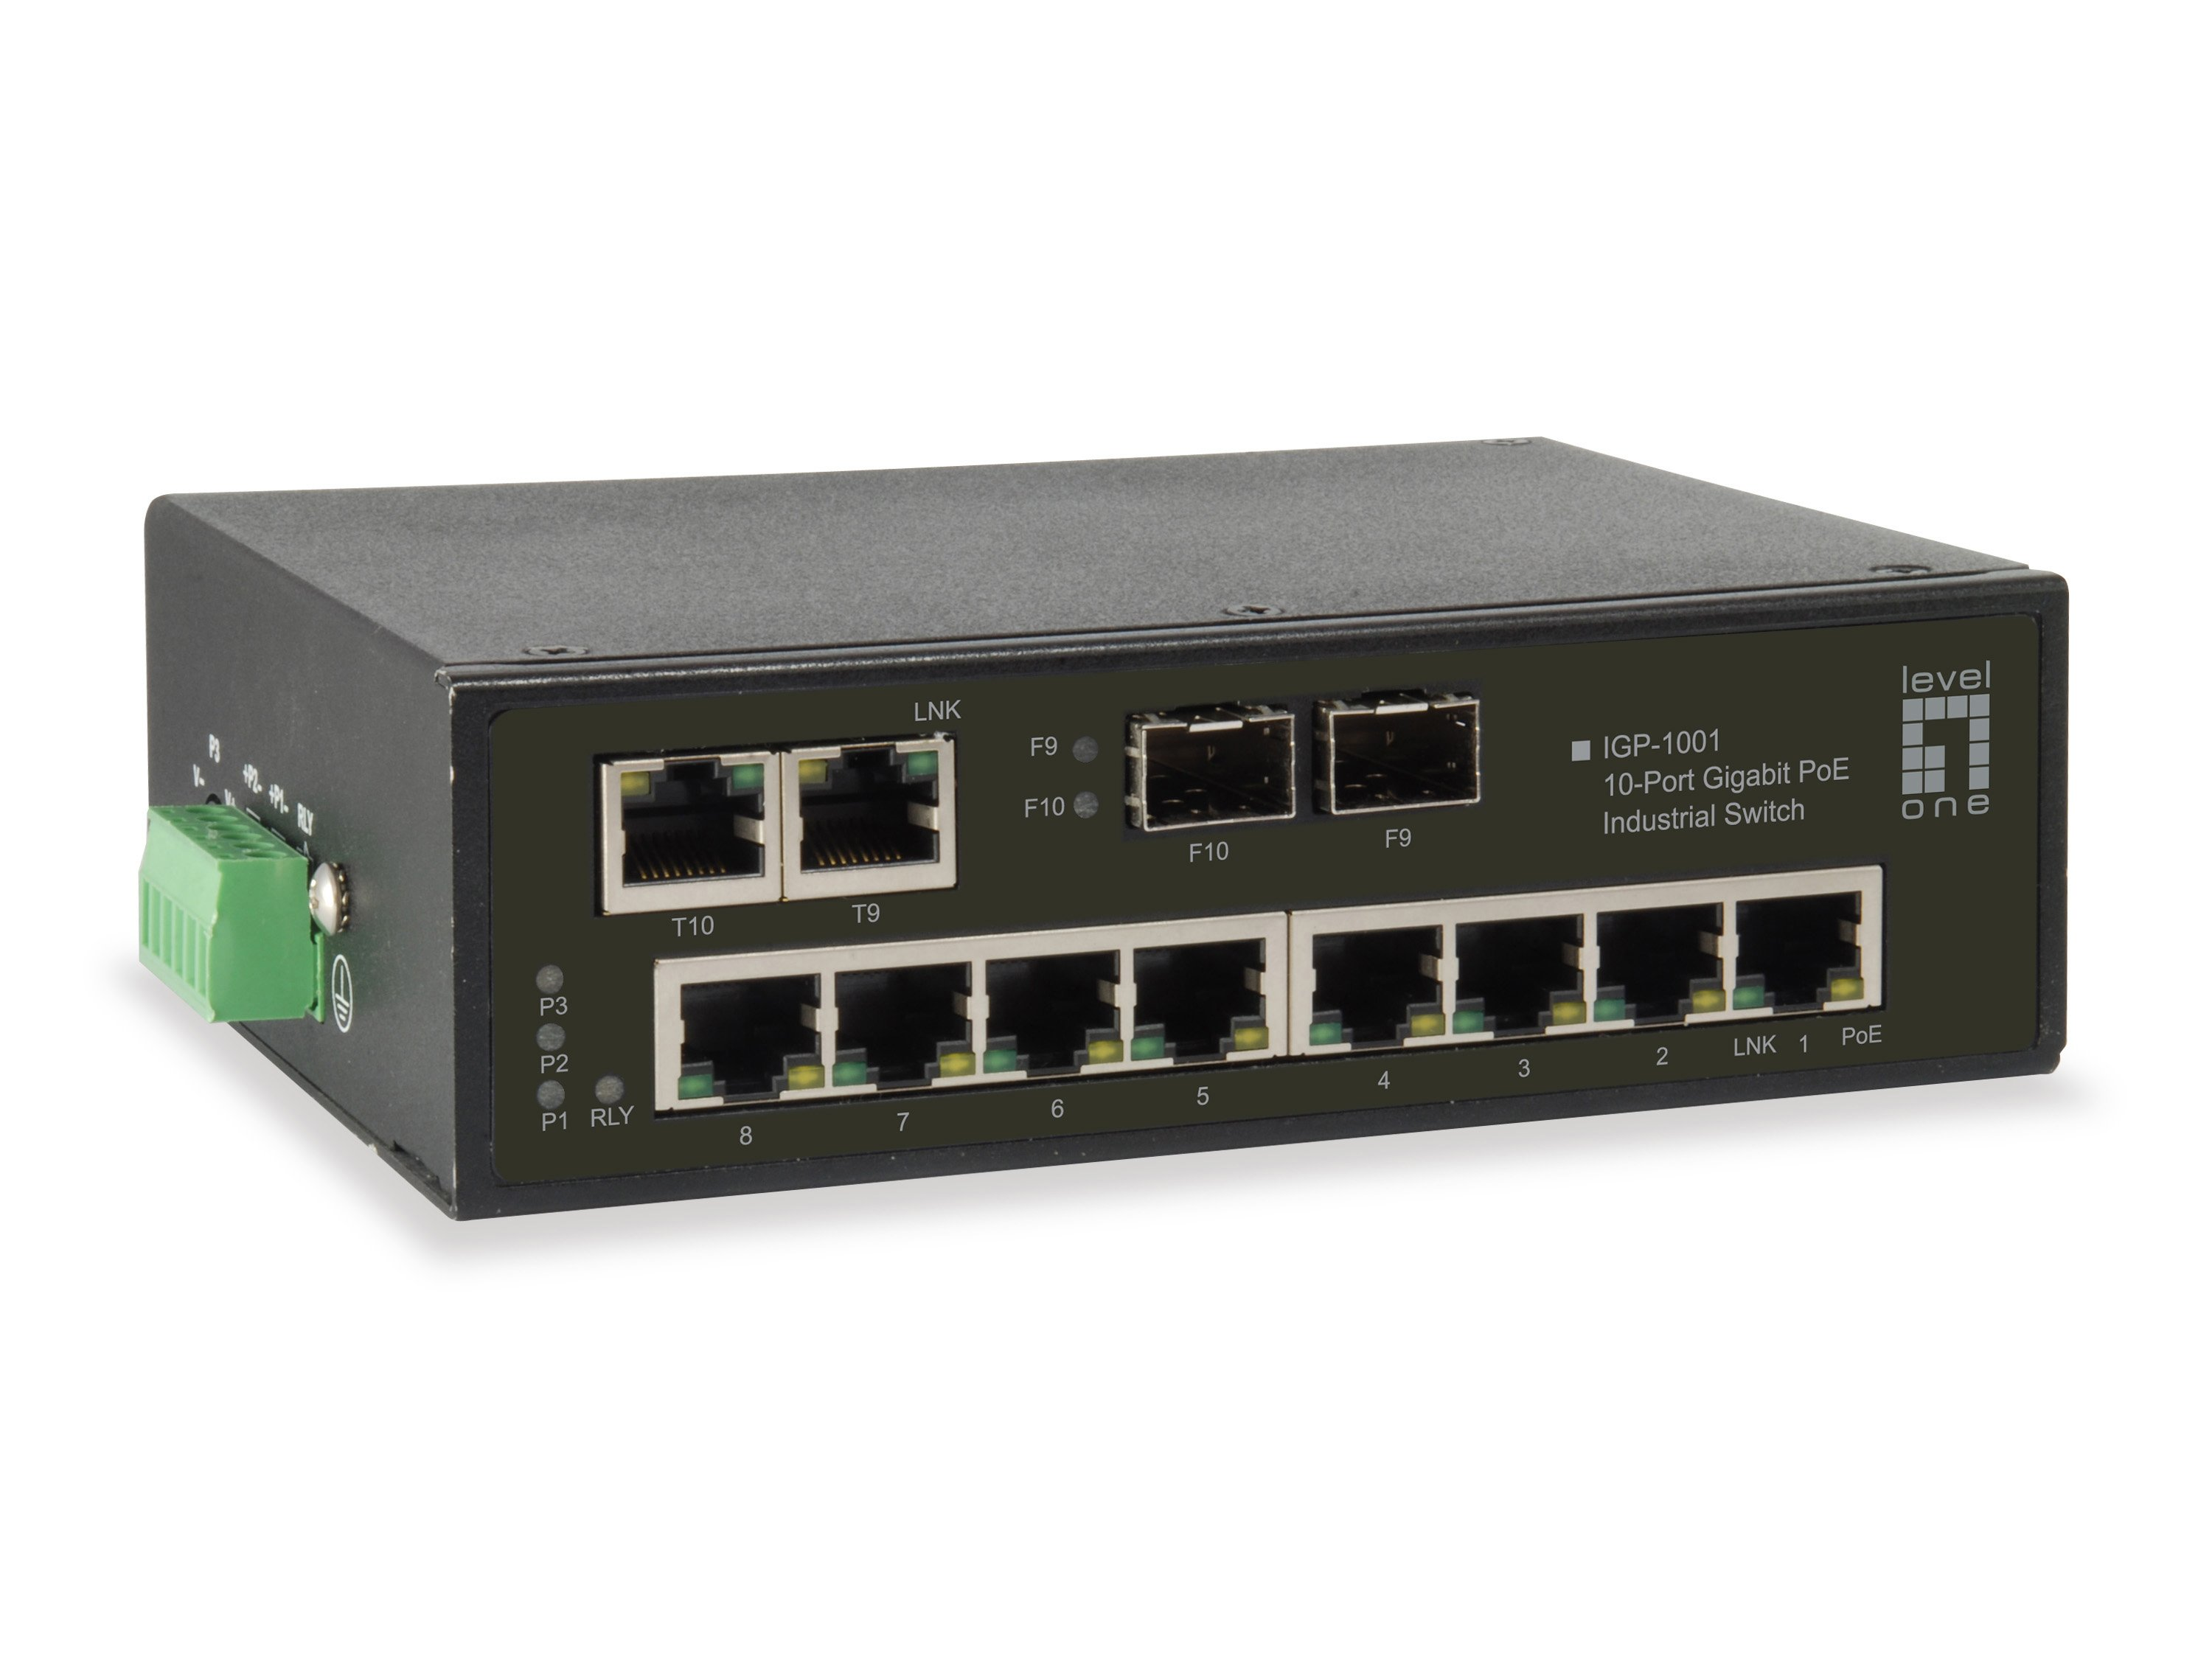 Igp 1001 10 Port Gigabit Poe Industrial Switch 8 Poe Outputs 2 X Gigabit Sfp Rj45 Combo Industrial